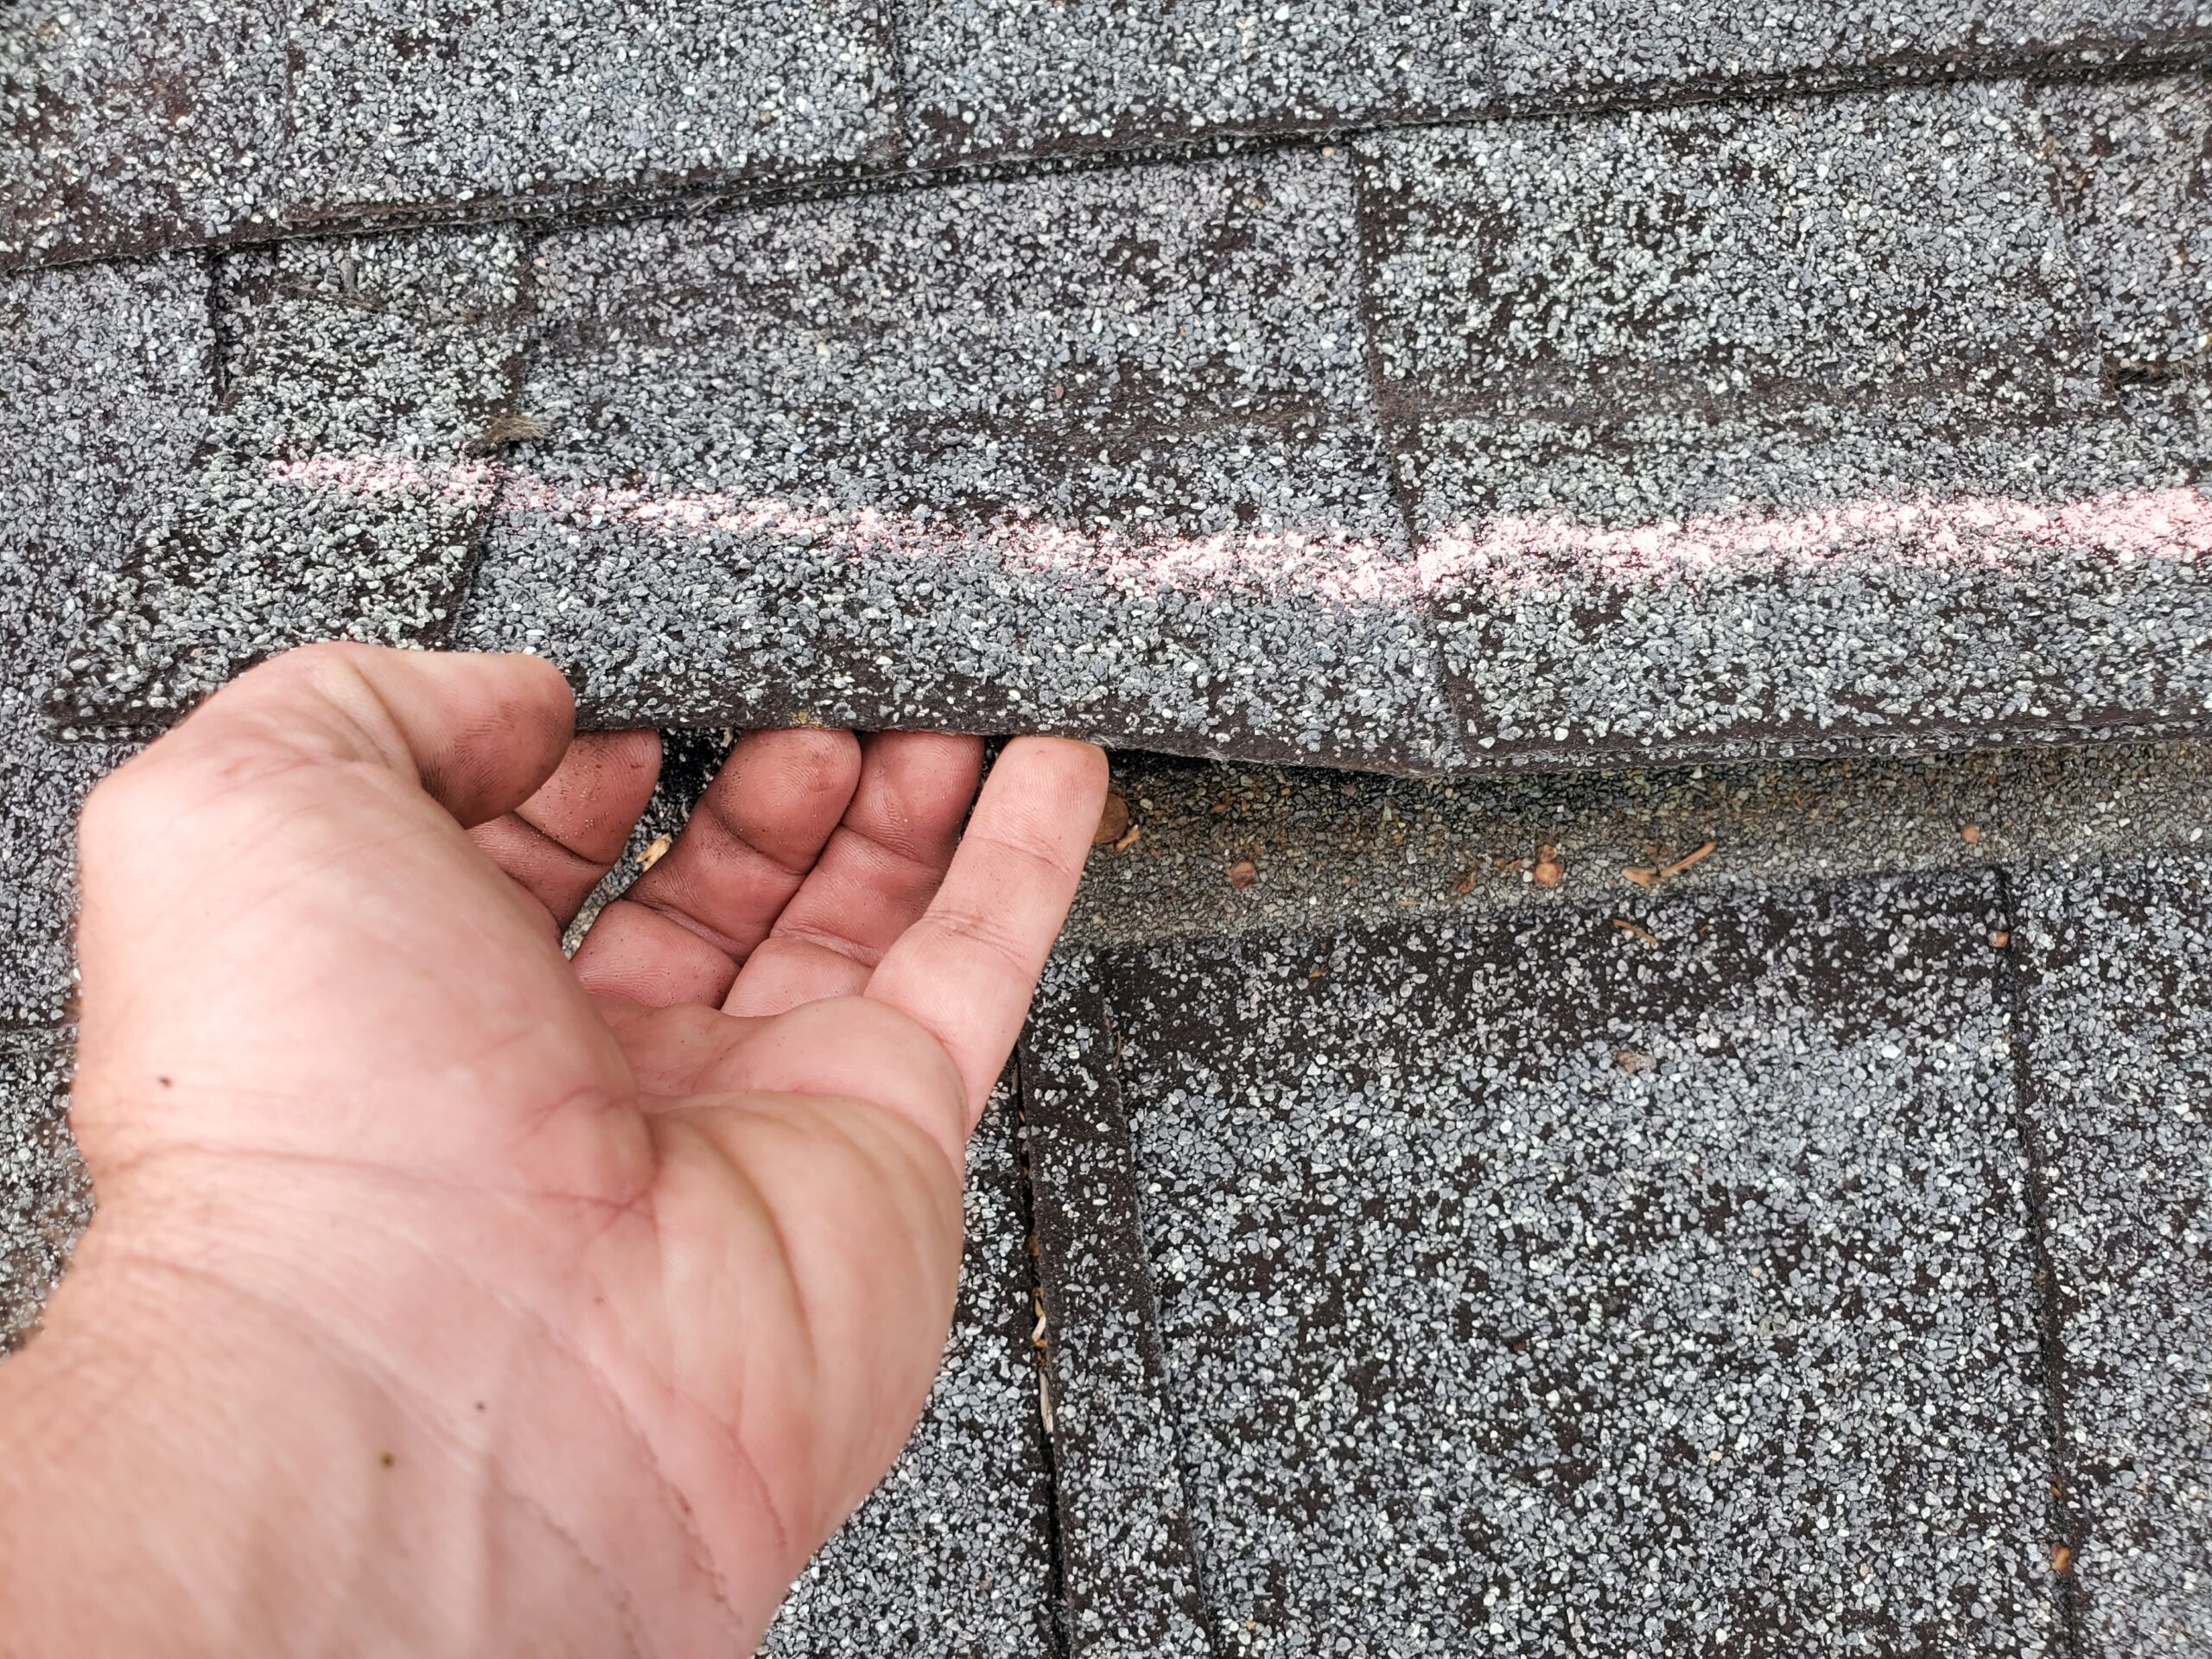 another wind creased shingle that is marked for an insurance adjuster to see